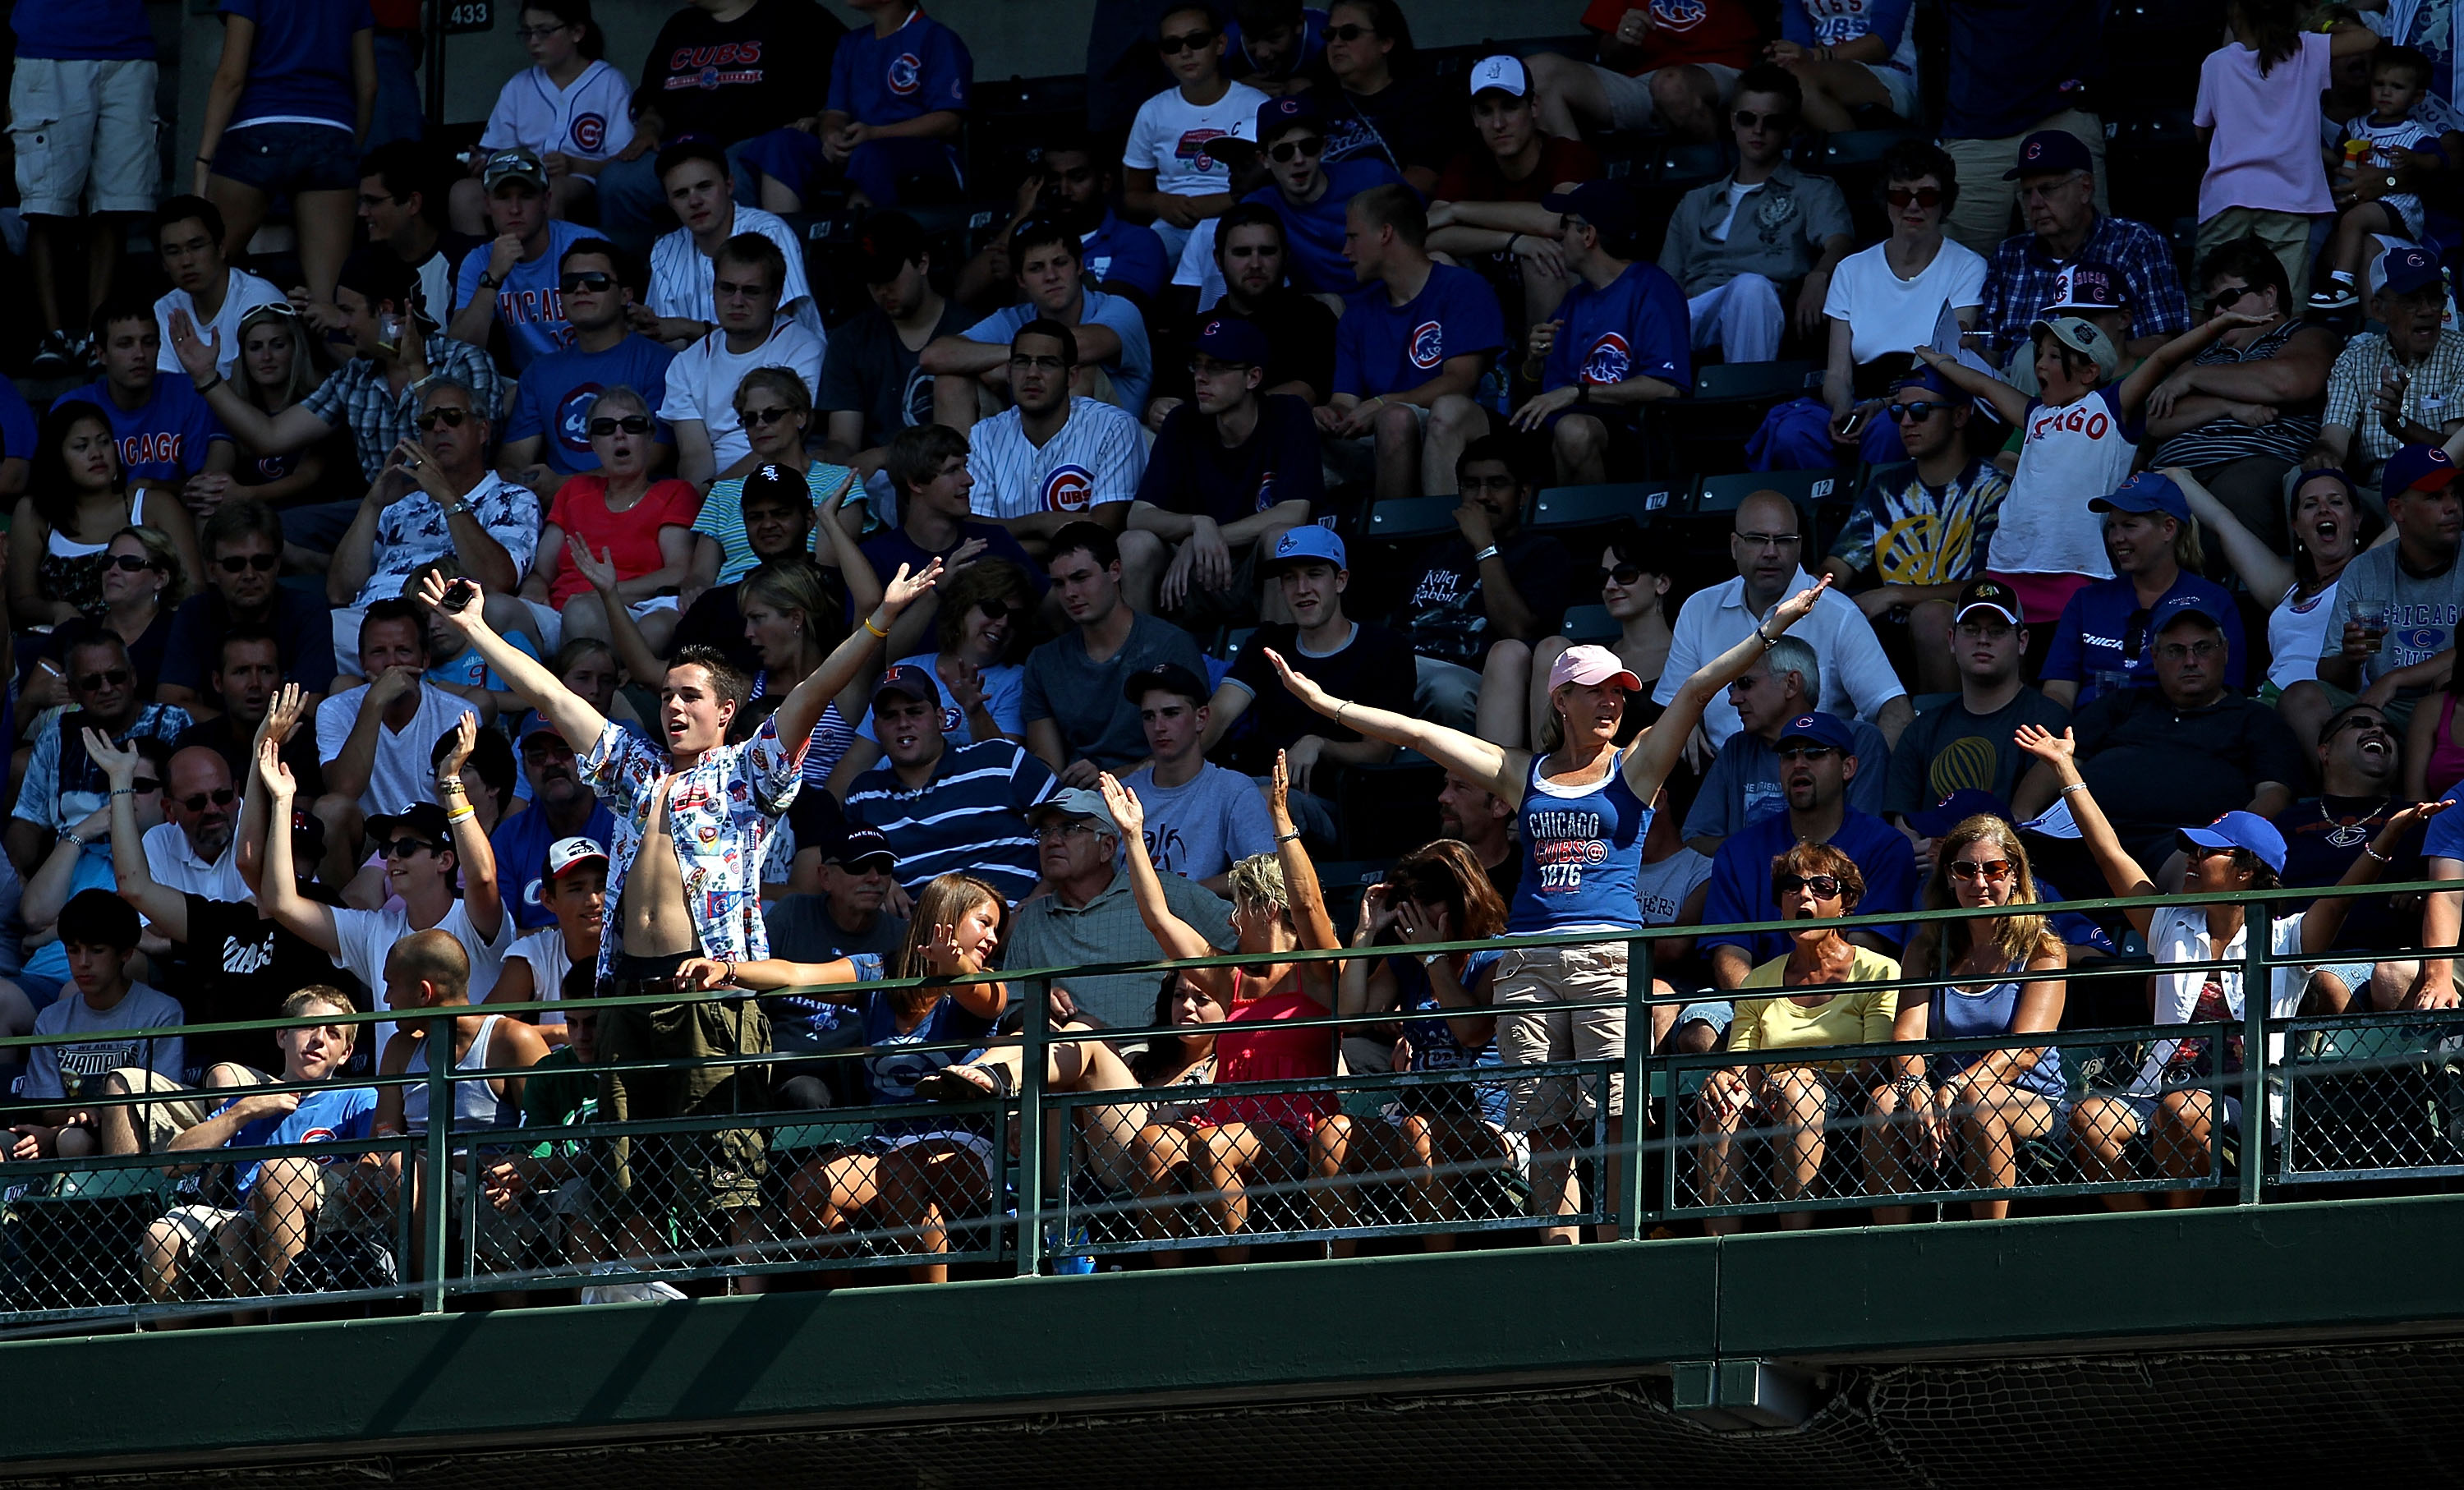 CHICAGO - JULY 21: Fans in the upper deck do a dance to the song 'YMCA' during a pitching change as the Chicago Cubs take on the Houston Astros at Wrigley Field on July 21, 2010 in Chicago, Illinois. The Astros defeated the Cubs 4-3 in 12 innings. (Photo